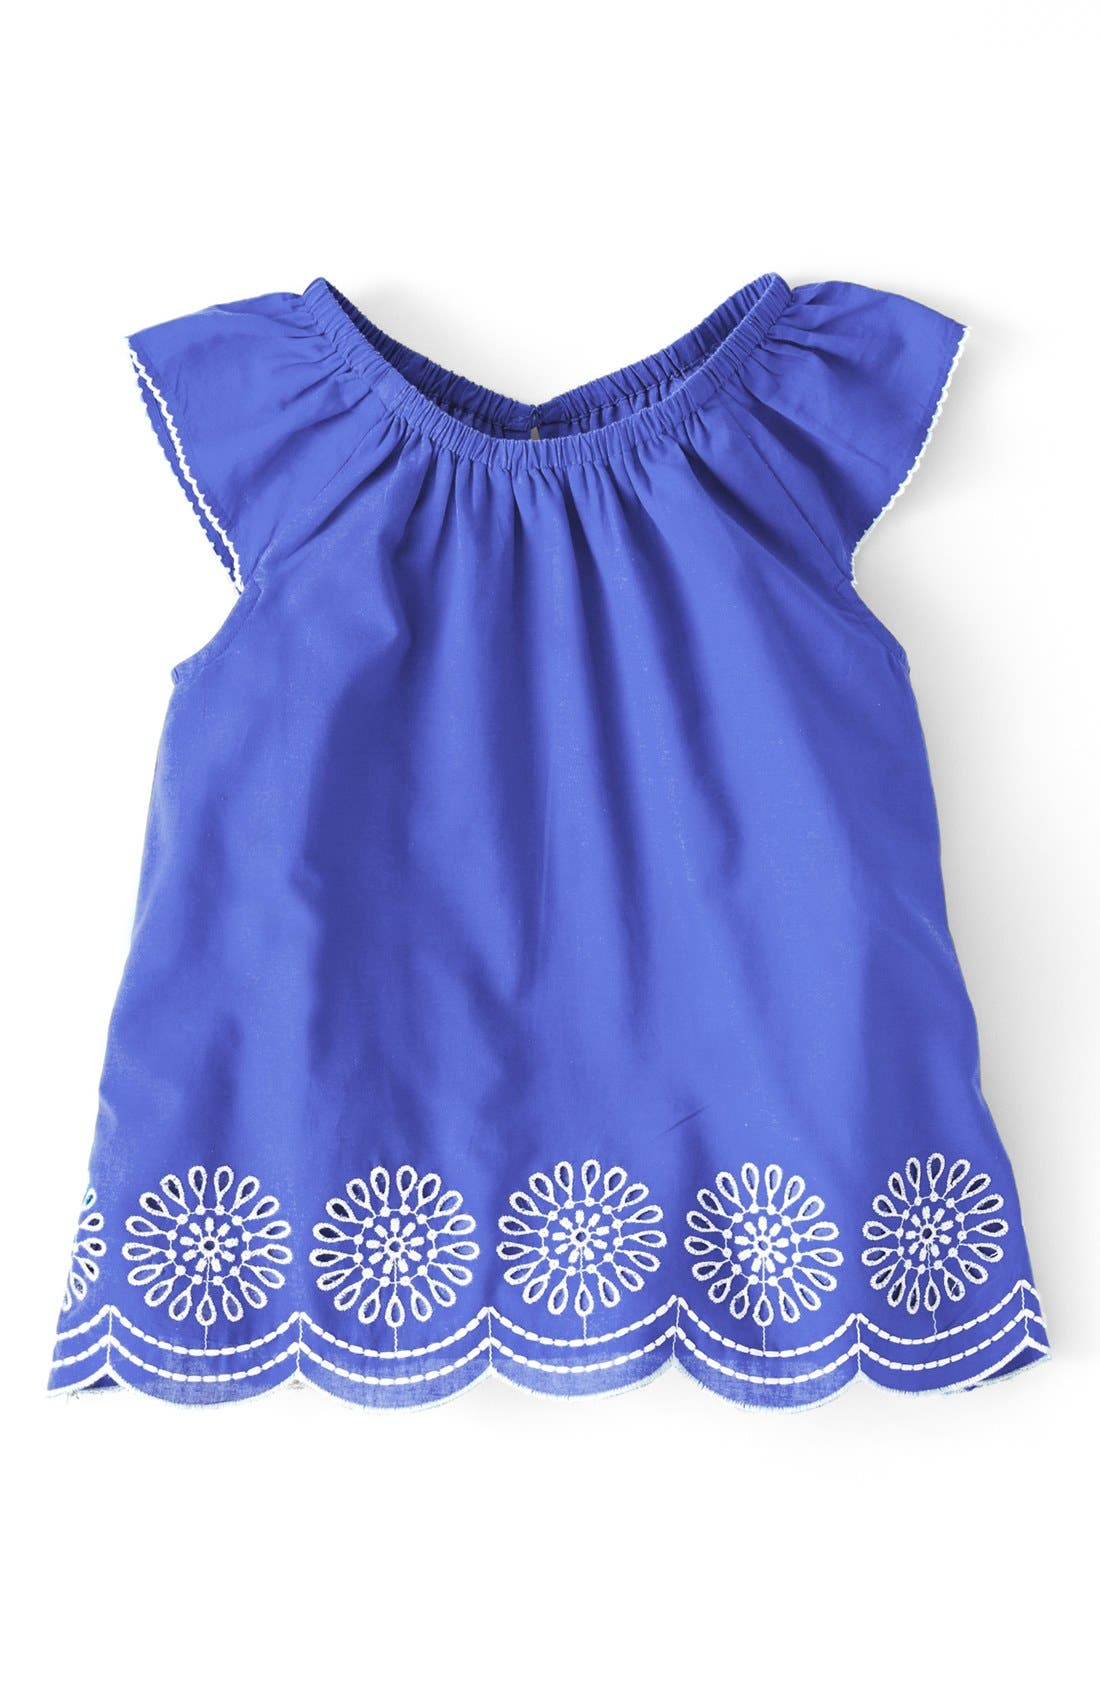 Alternate Image 1 Selected - Mini Boden 'Broderie' Cotton Cambric A-Line Top (Little Girls & Big Girls)